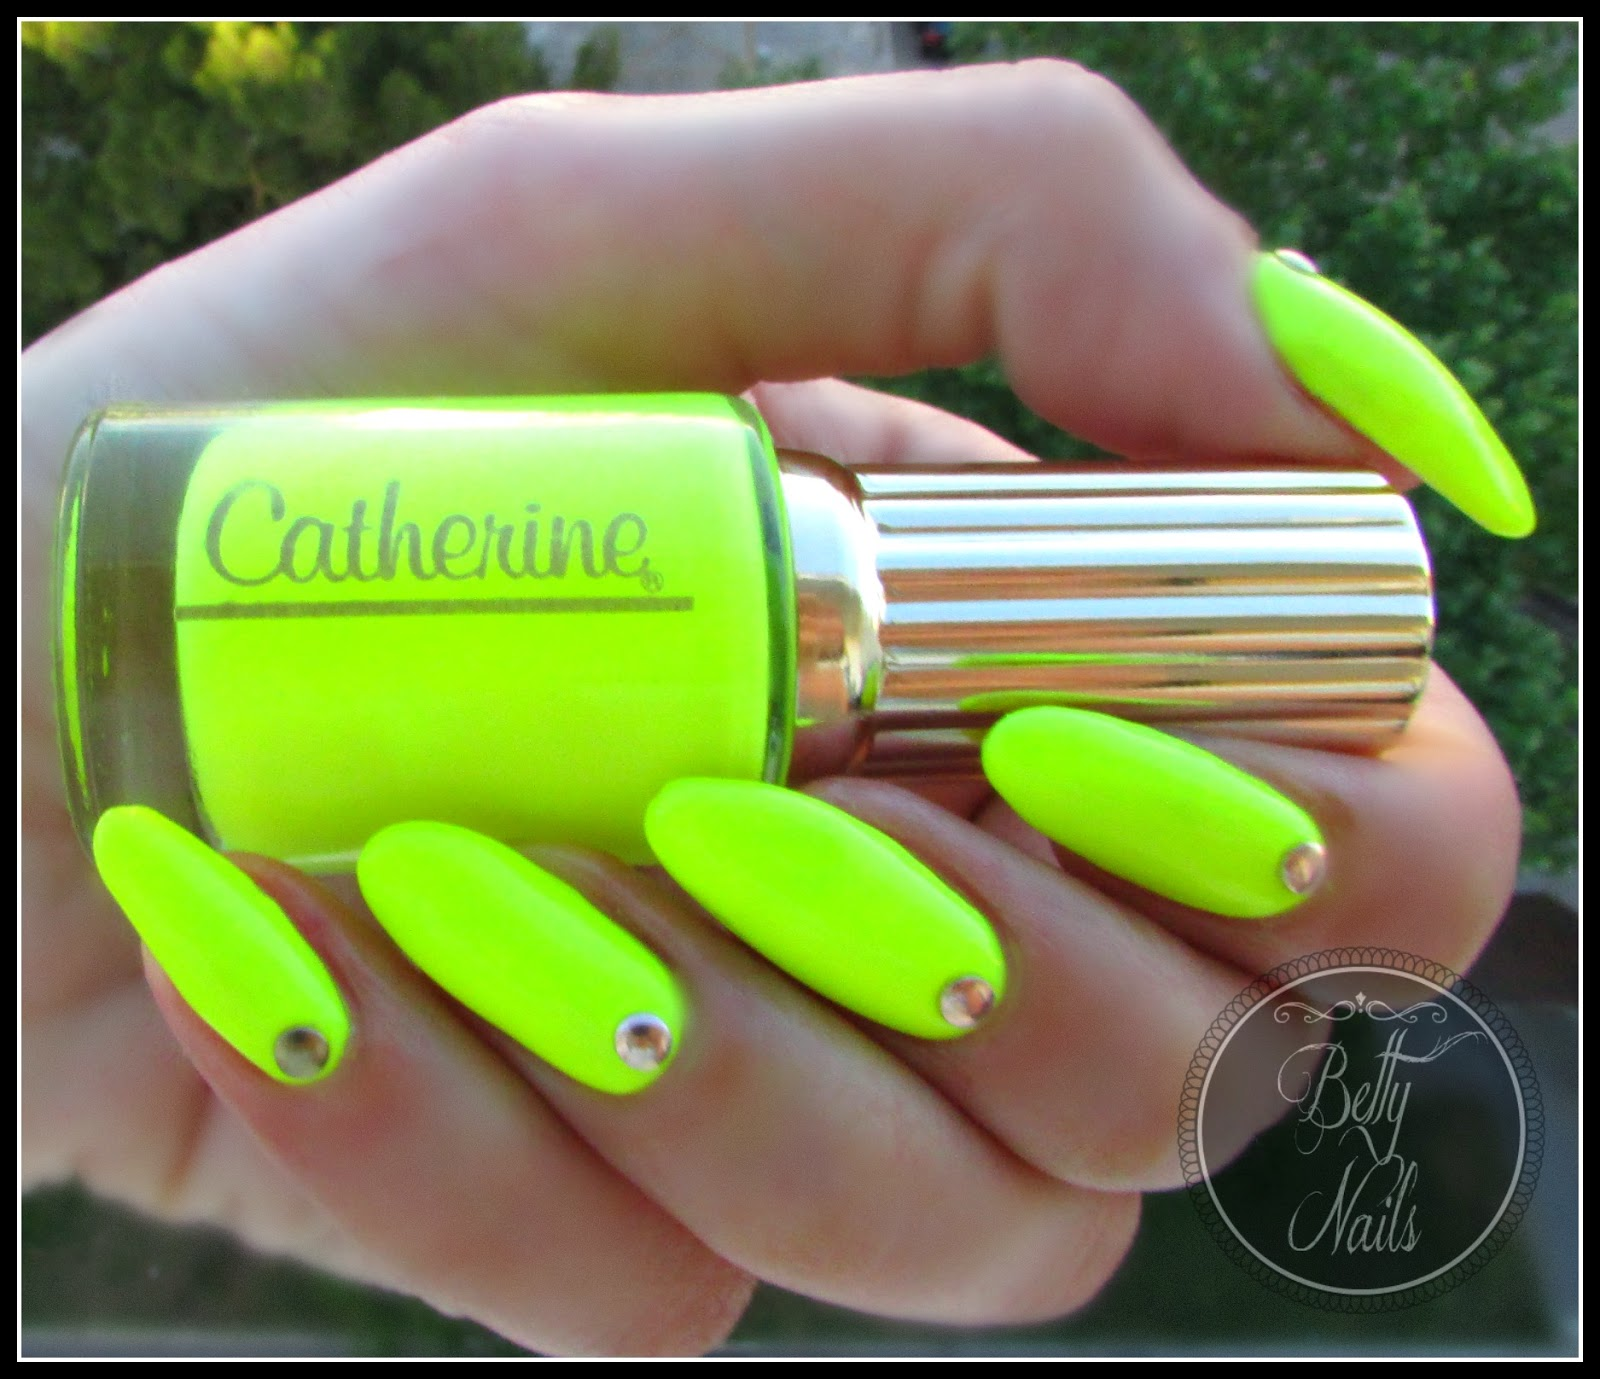 Betty Nails: Catherine Neon Pop Art Collection Swatches